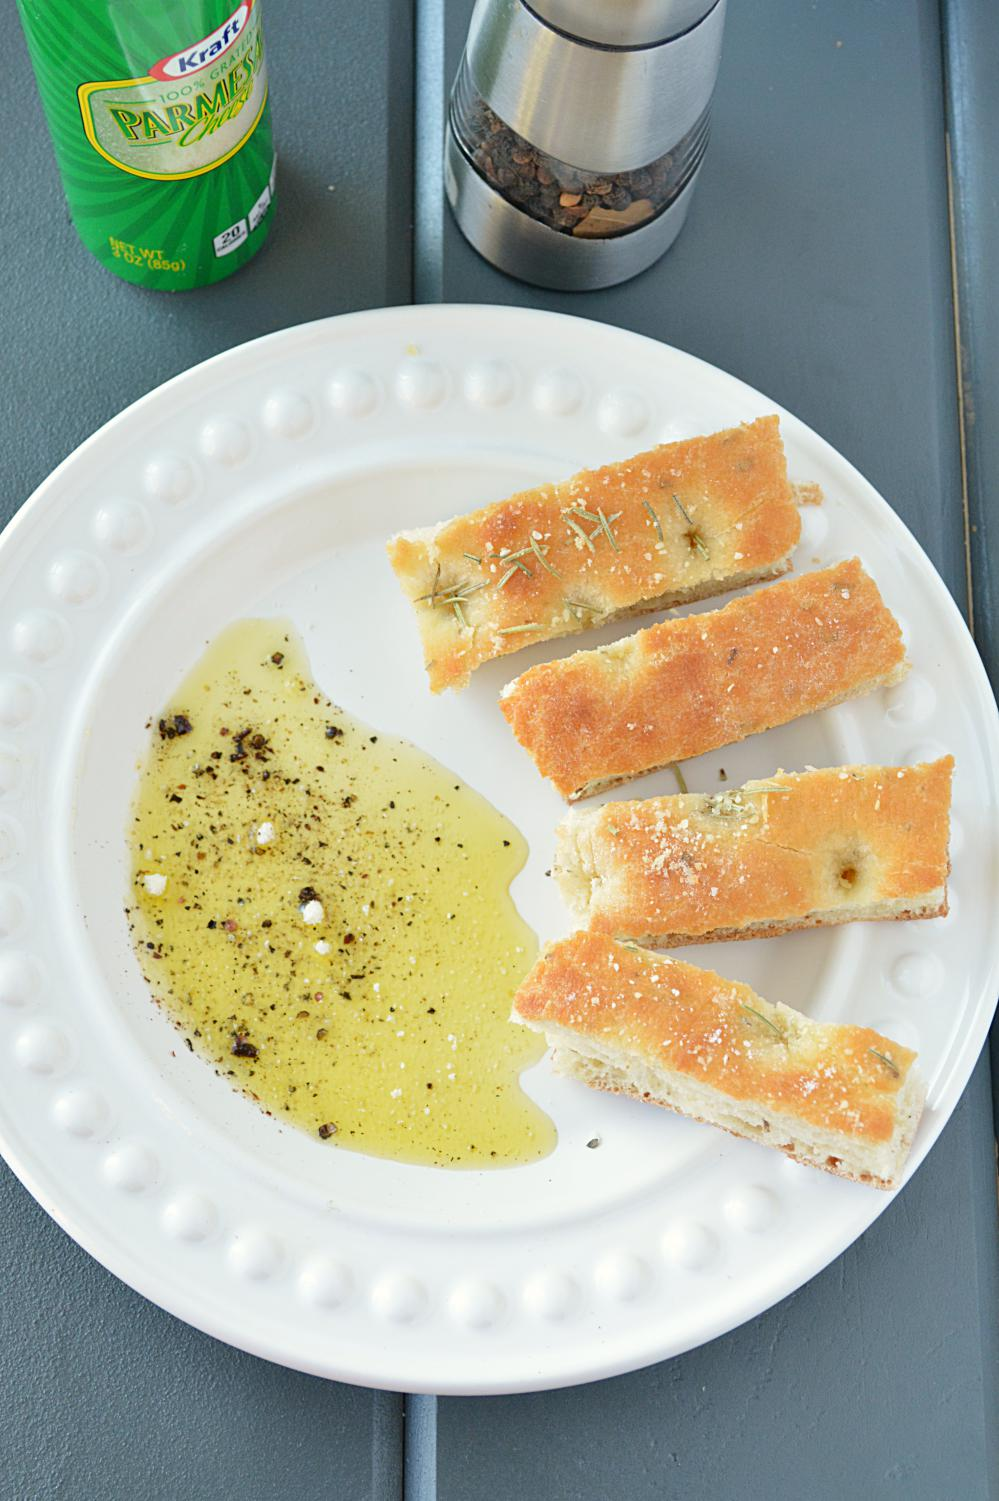 Focaccia bread served with olive oil